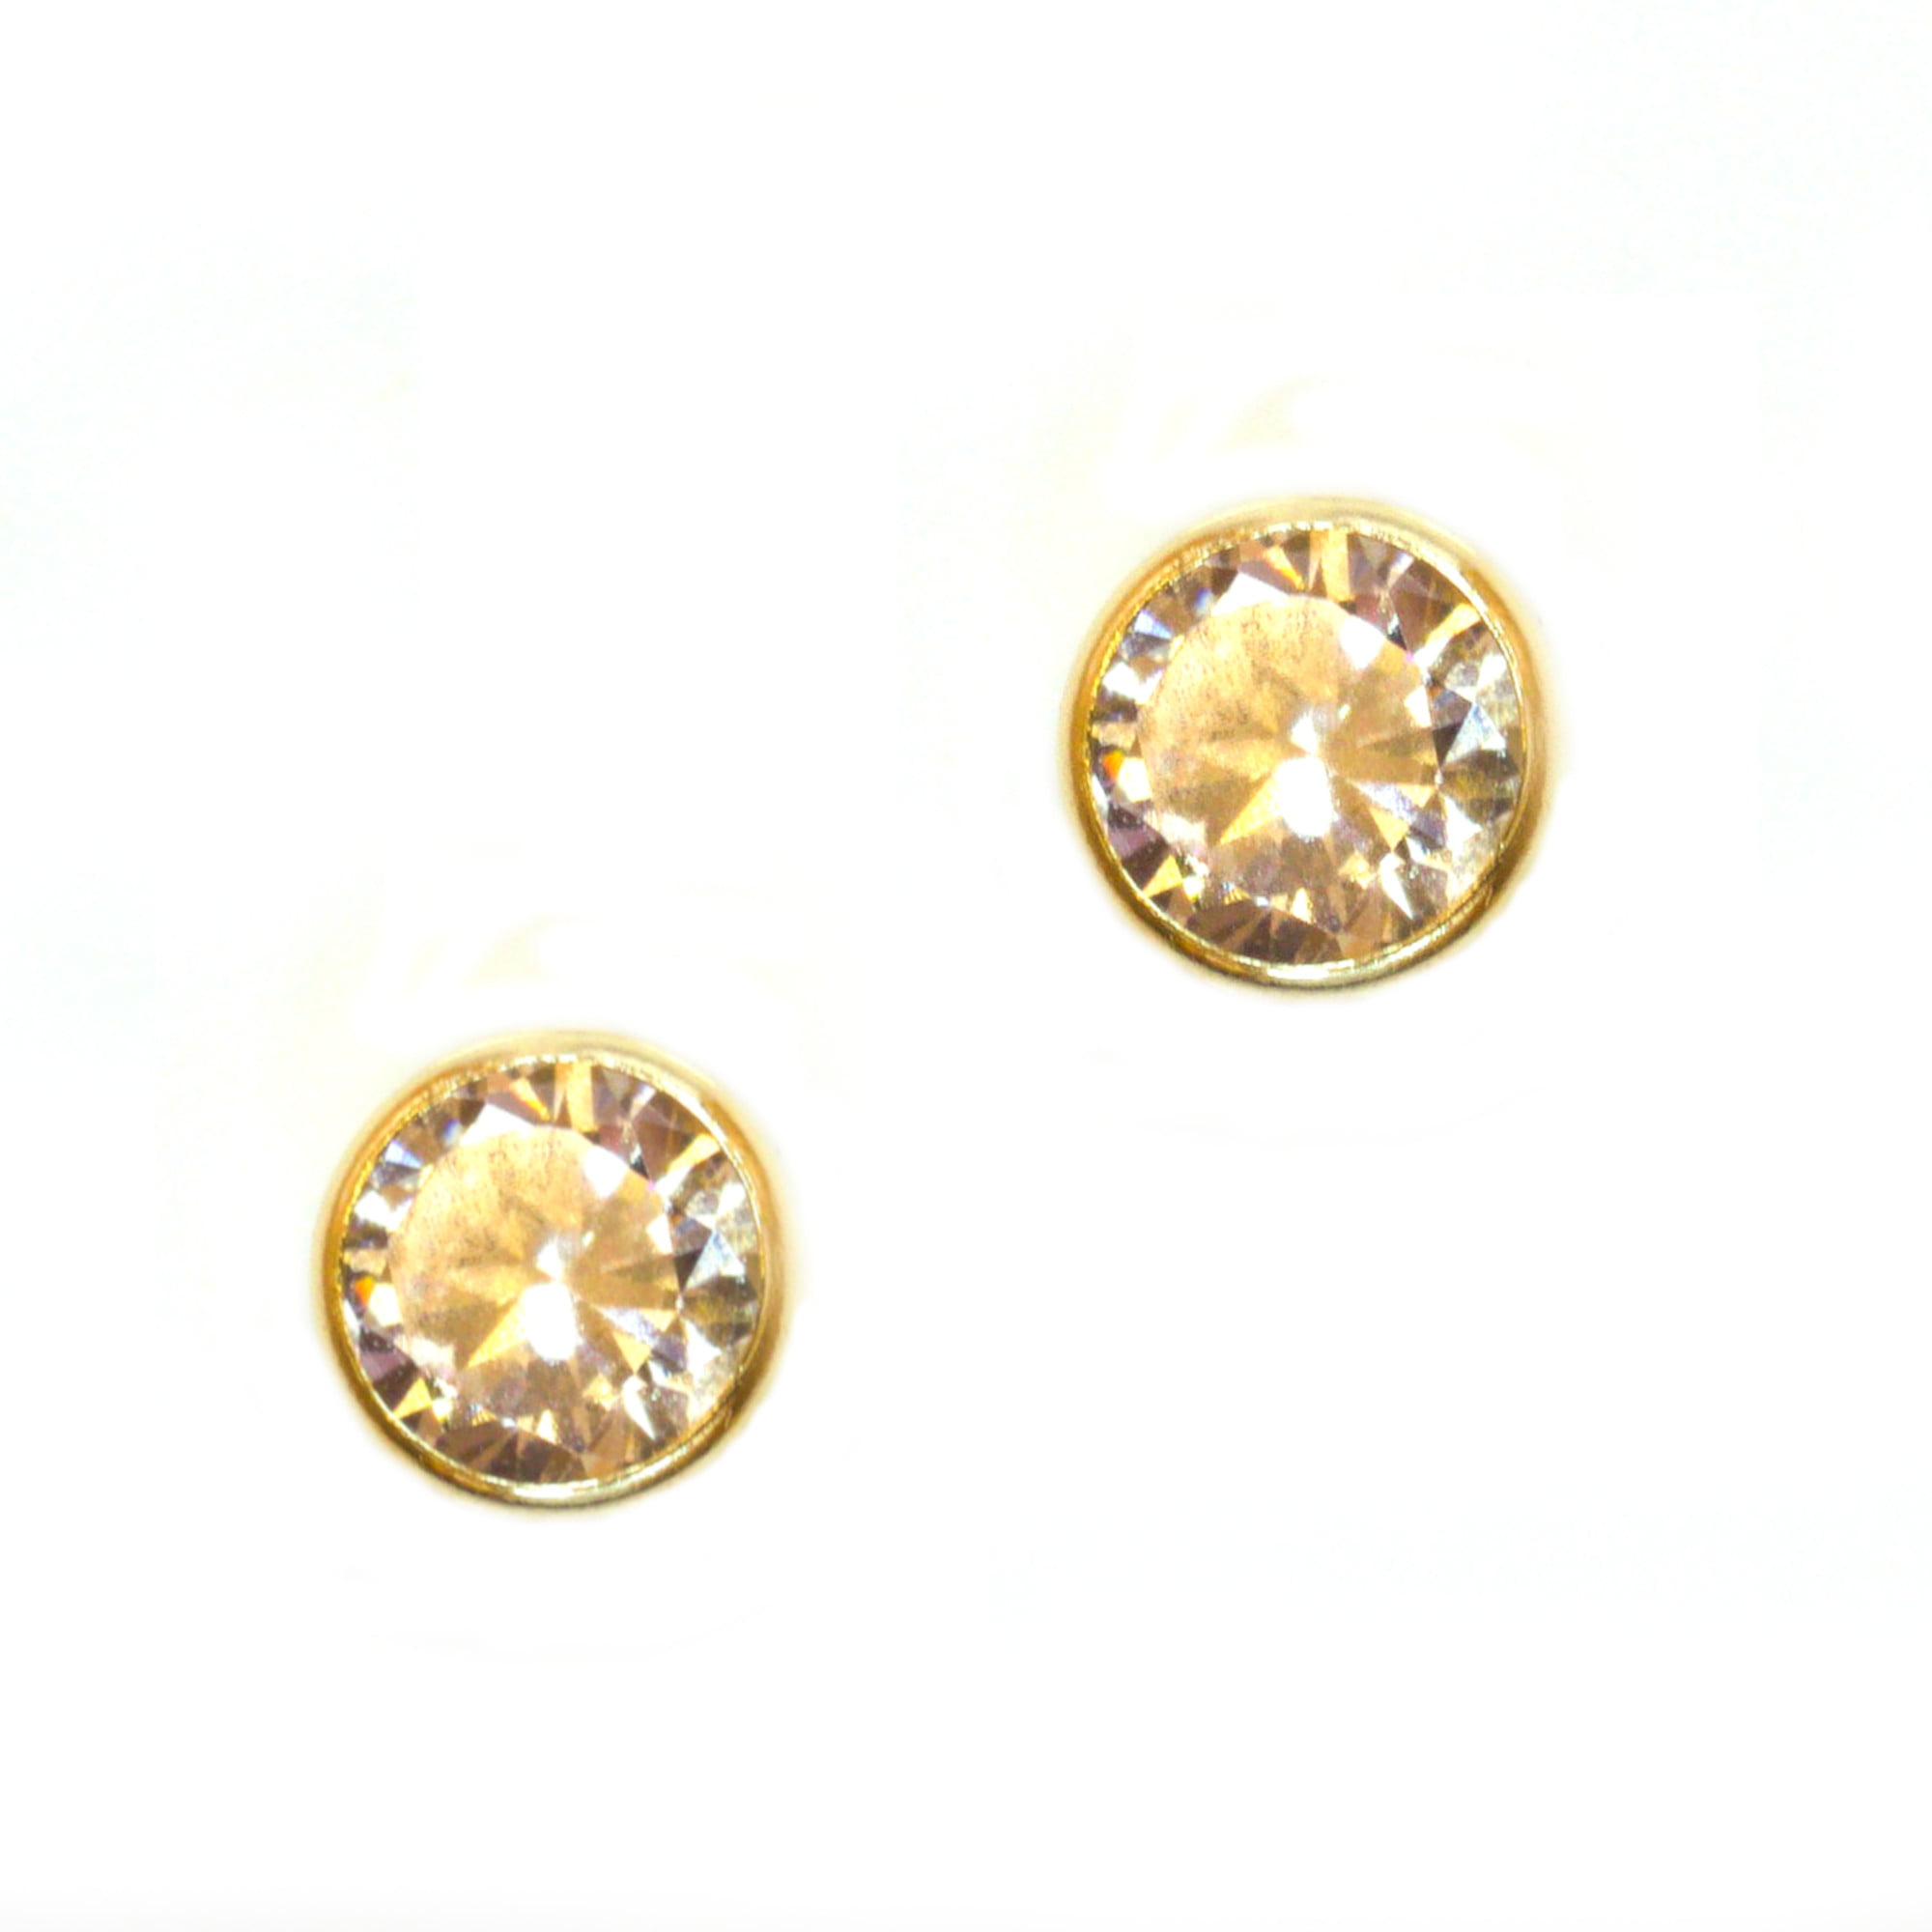 4mm CZ round 9ct yellow gold stud earrings